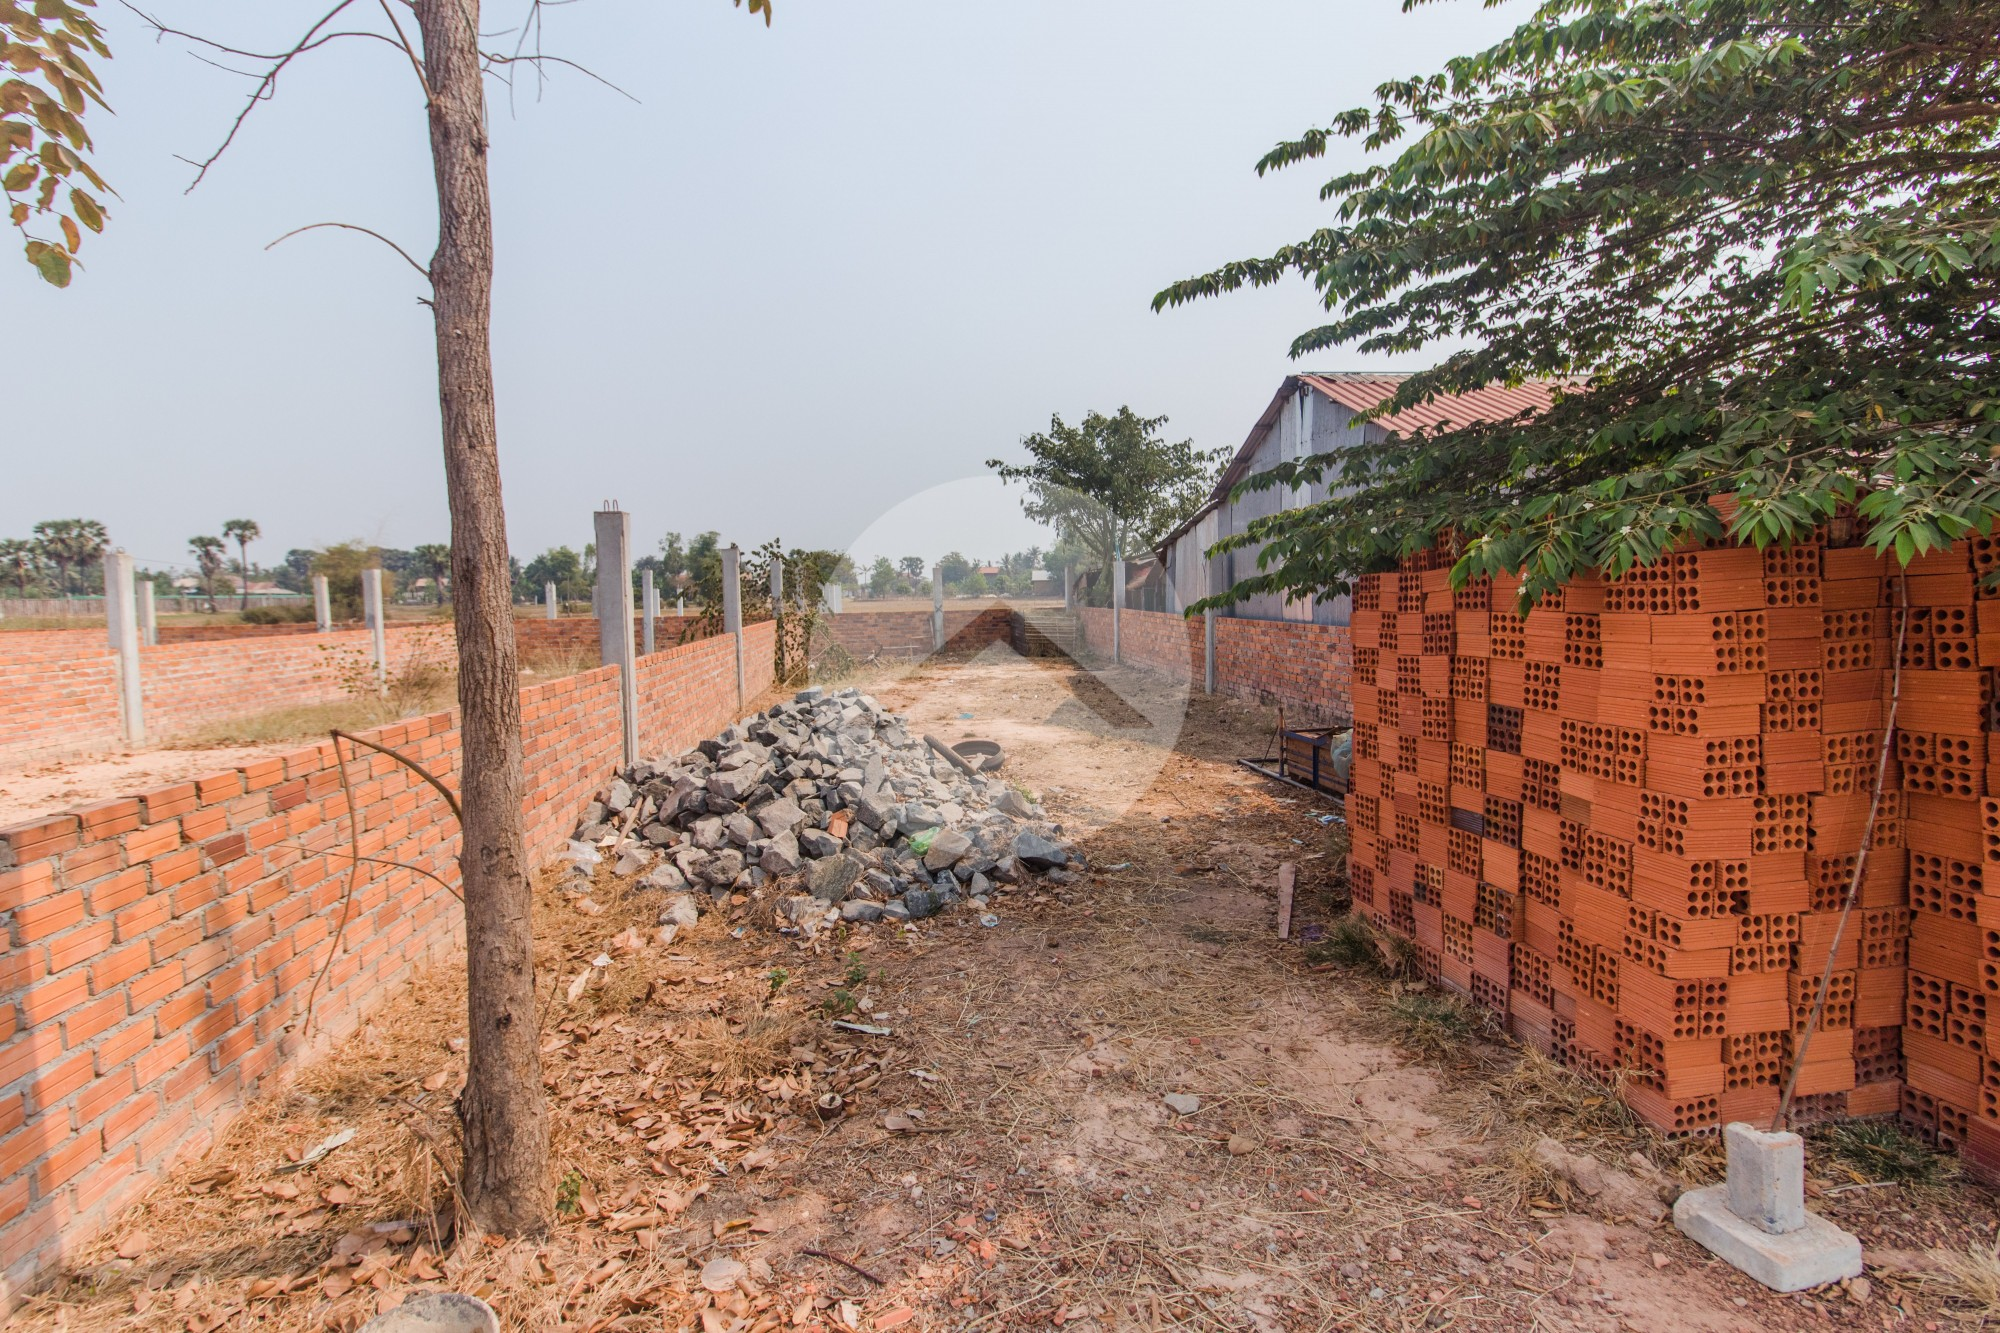 154 Sqm Residential Land For Sale - Sambour, Siem Reap